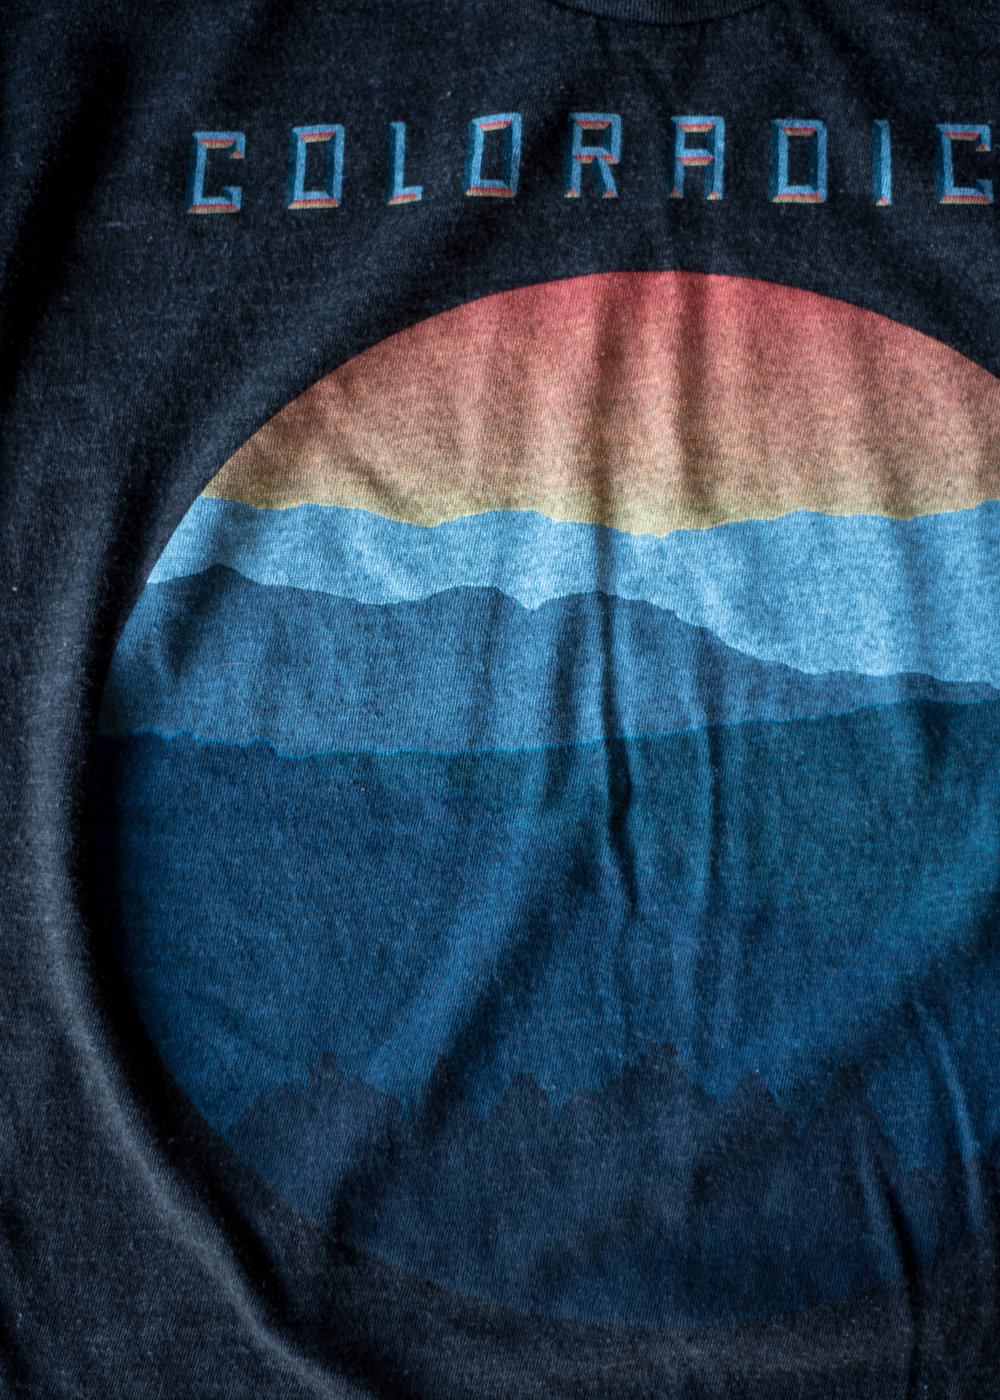 Coloradical. Print method VINTAGE. Screen printed on an American Apparel tri black shirt. Printed by A Small Print Shop.